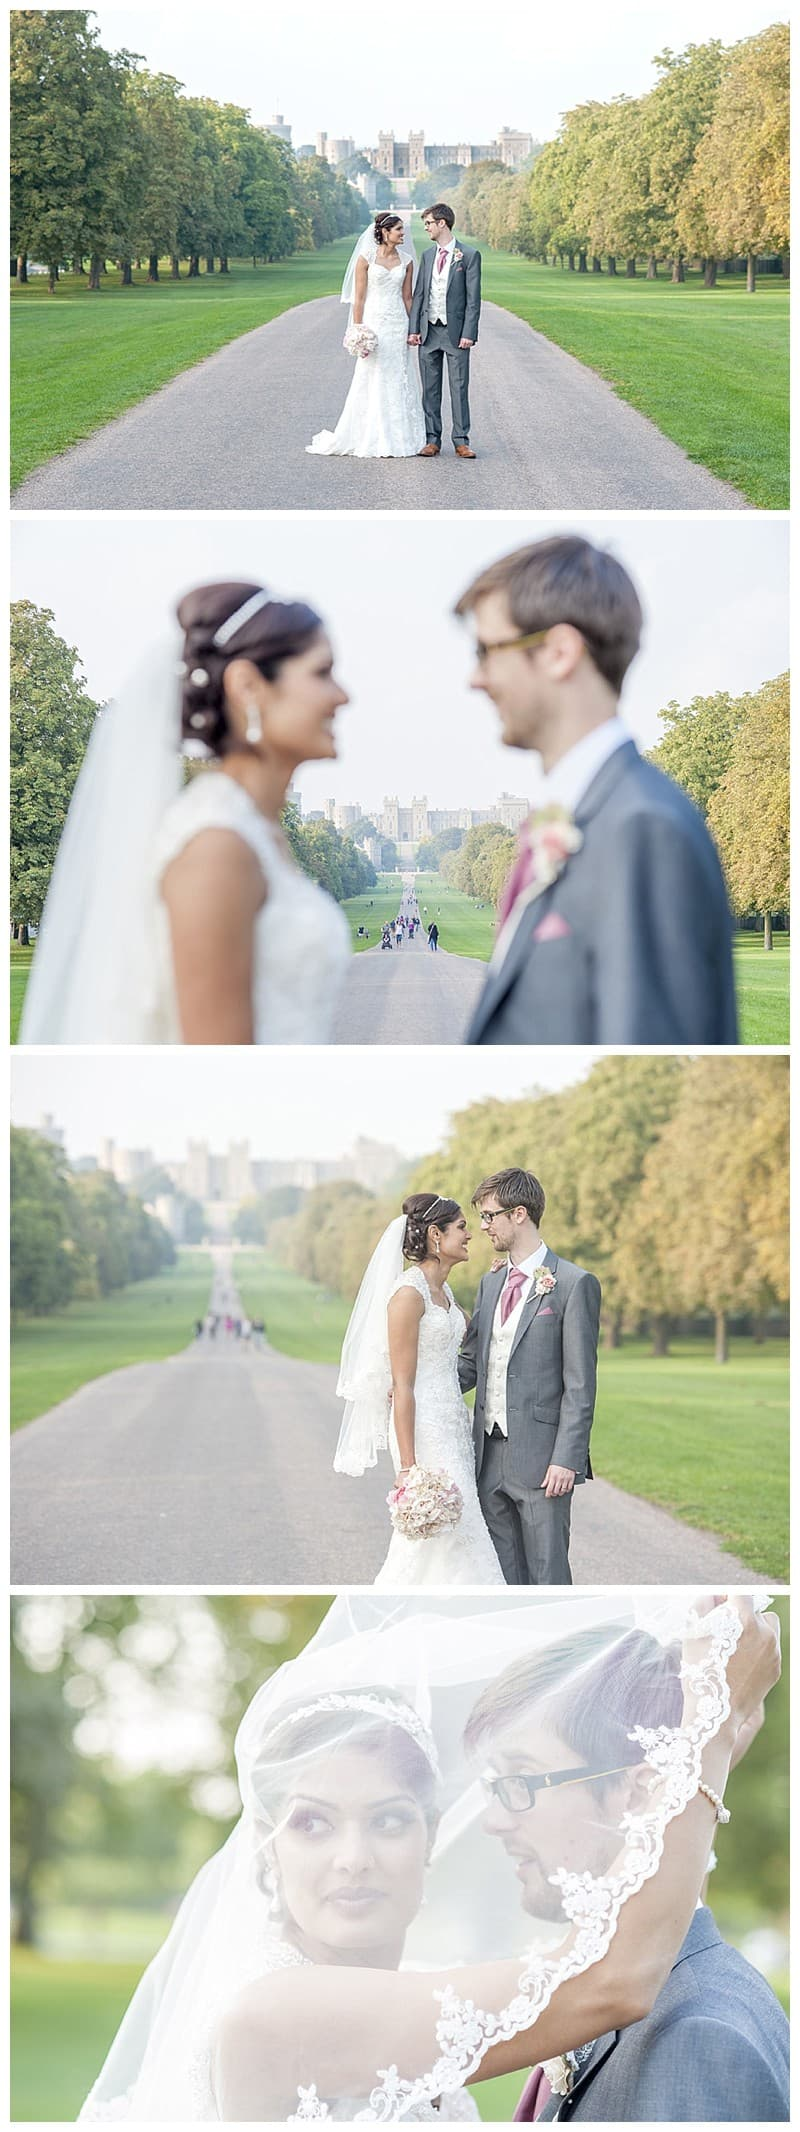 Jamie & Nisha, Windsor Castle Wedding, Benjamin Wetherall Photography 0011